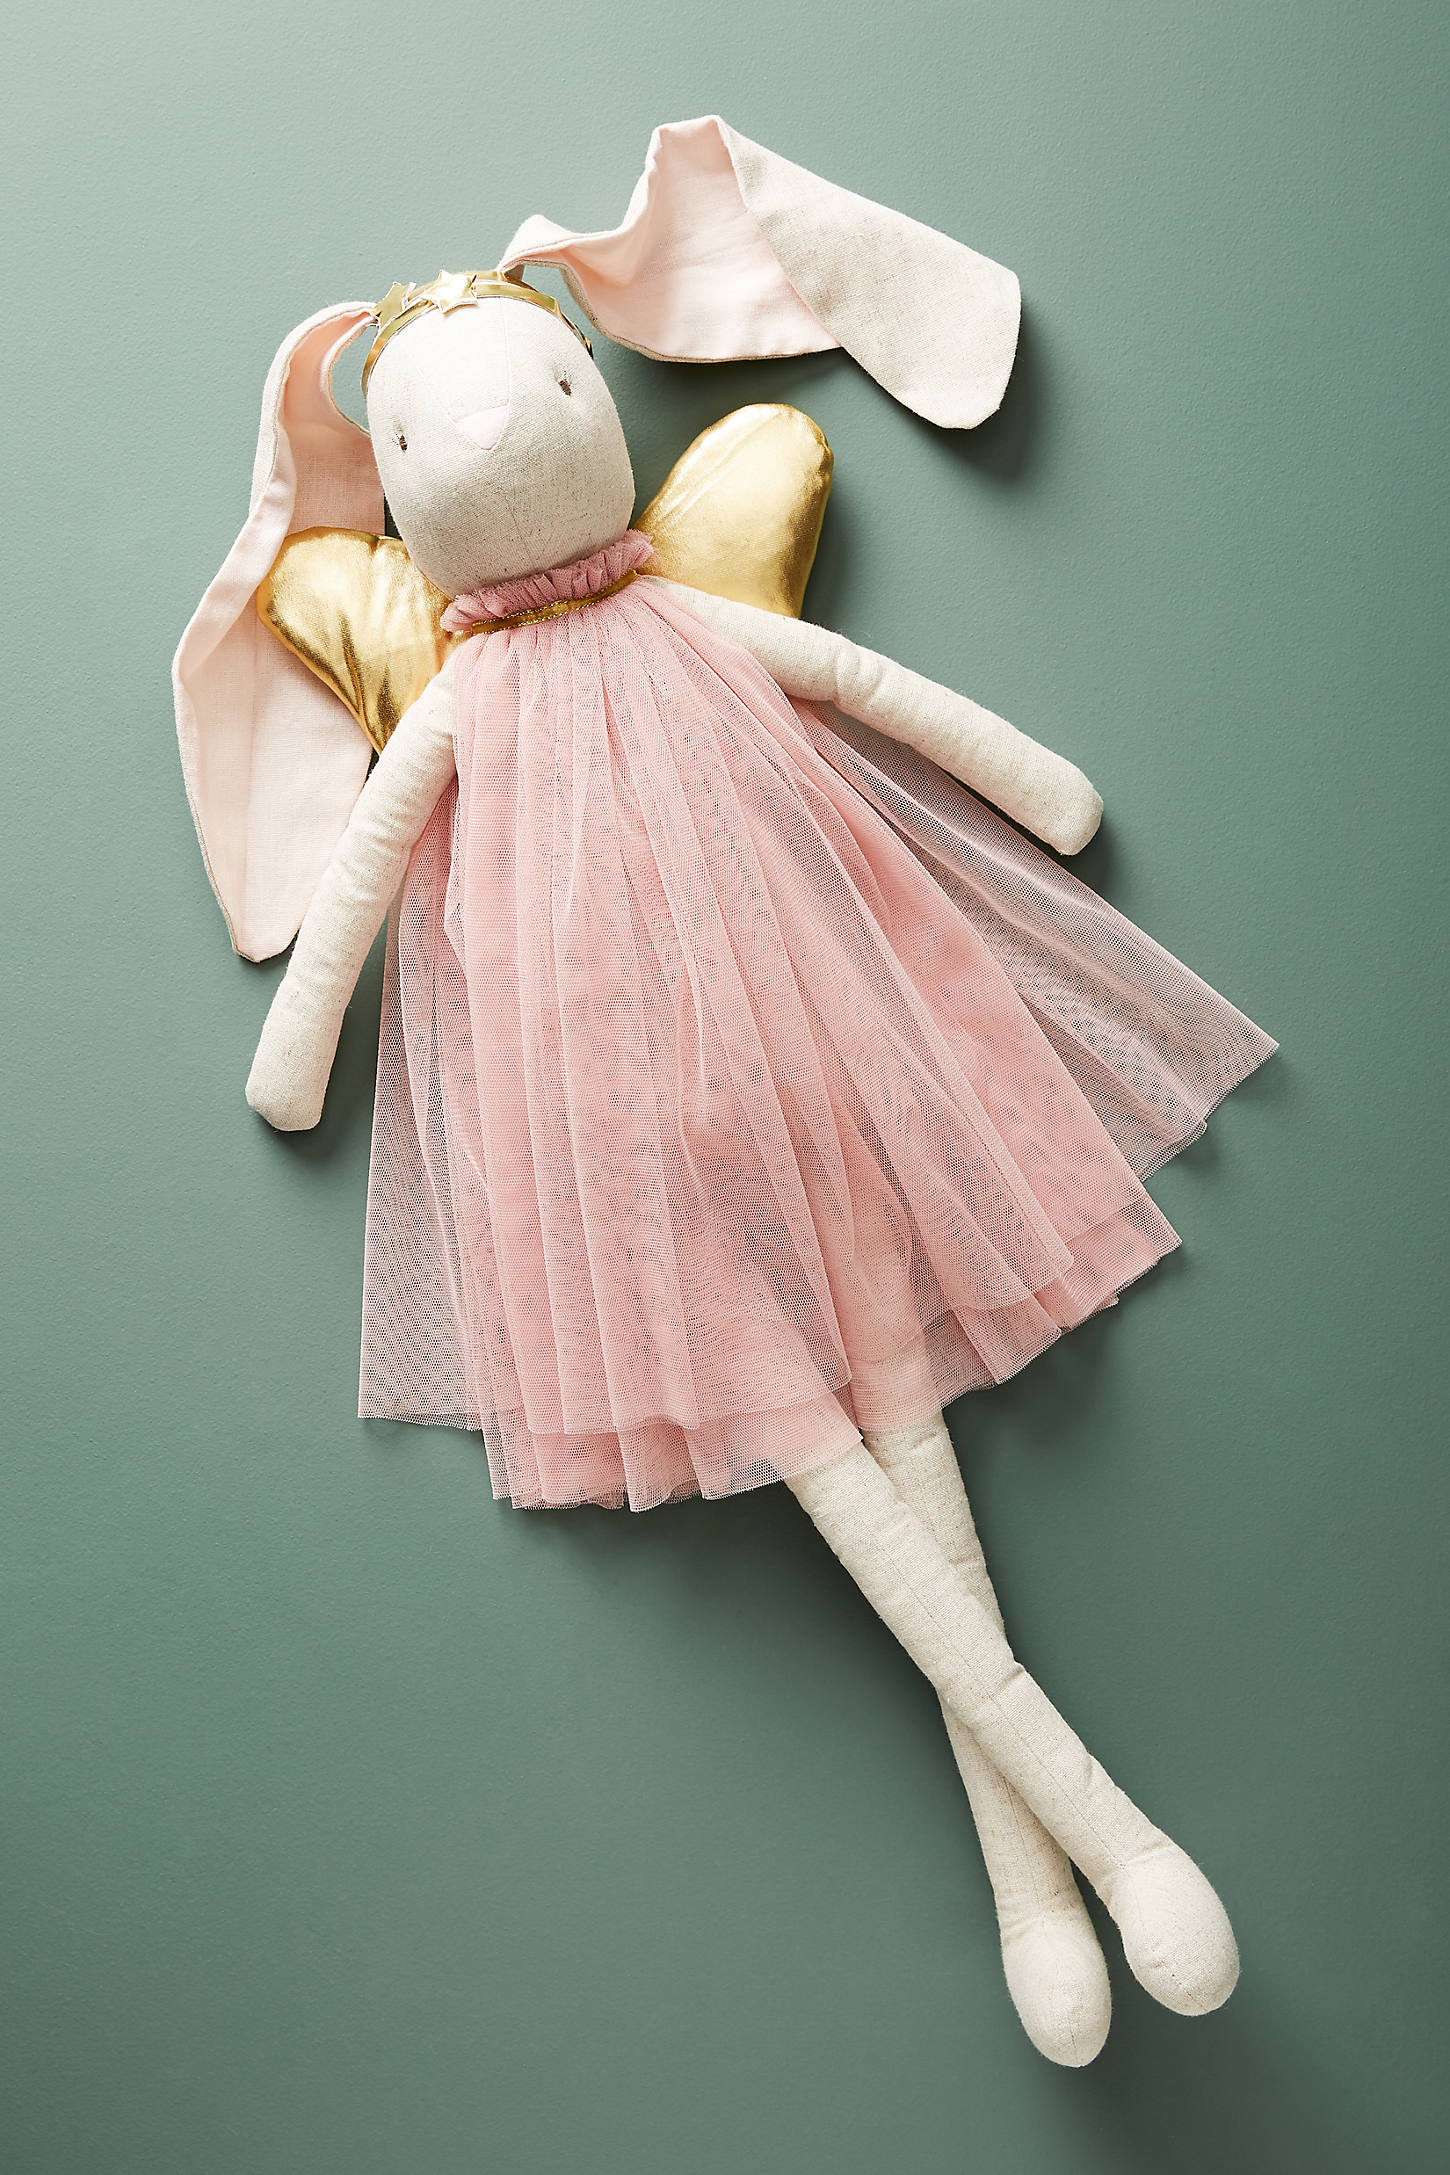 Winged Bunny Doll